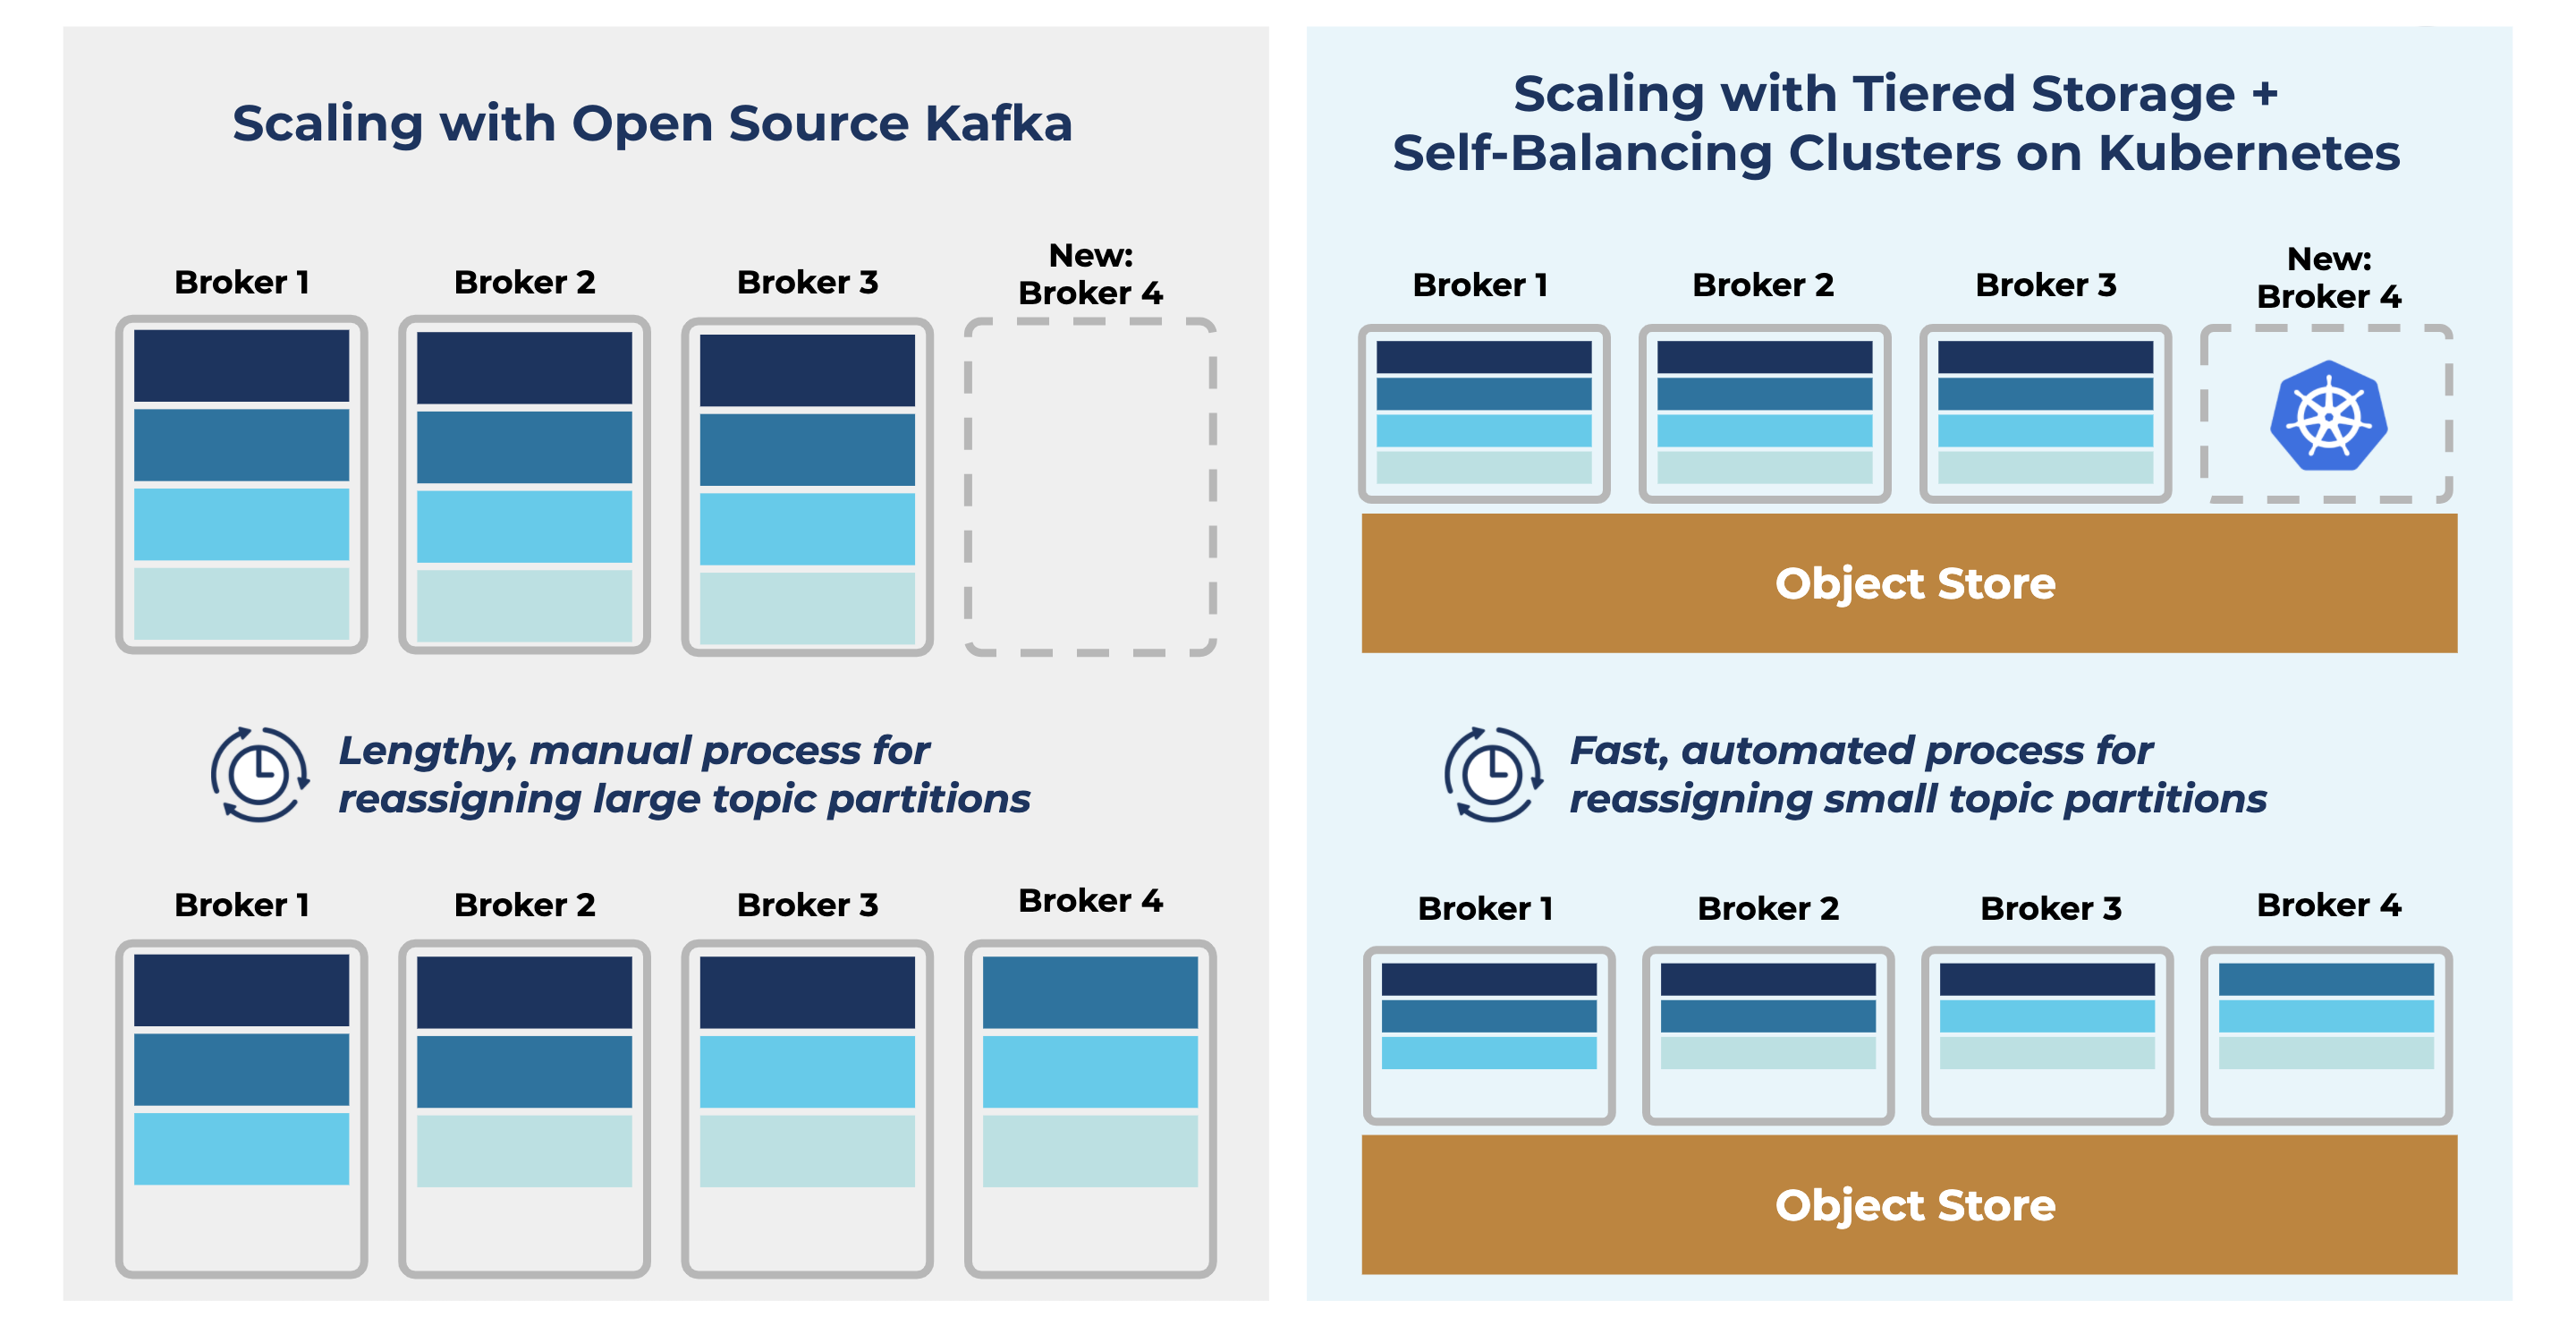 Scaling with Open Source Kafka vs. Scaling with Tiered Storage + Self-Balancing Clusters on Kubernetes